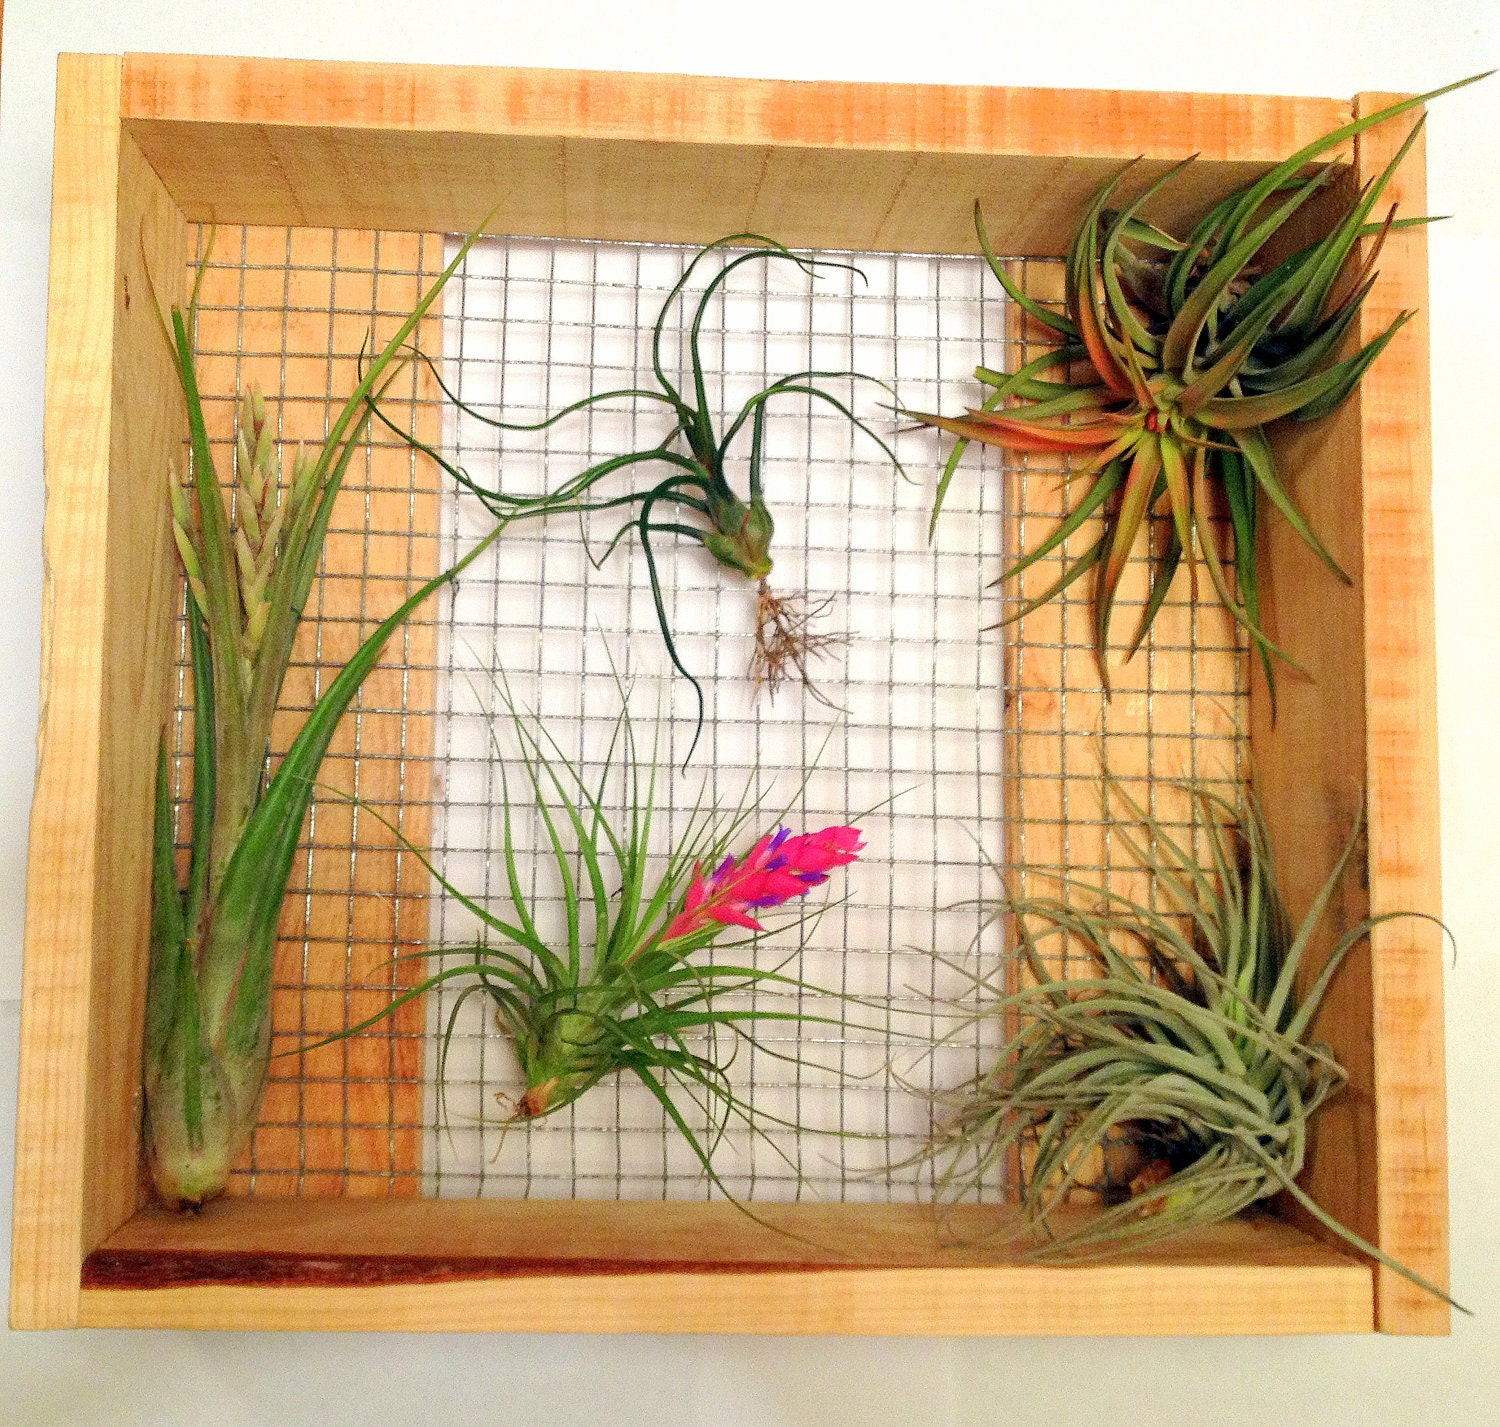 Air plant wall art hanger by twistedacres on etsy for Air plant wall hanger